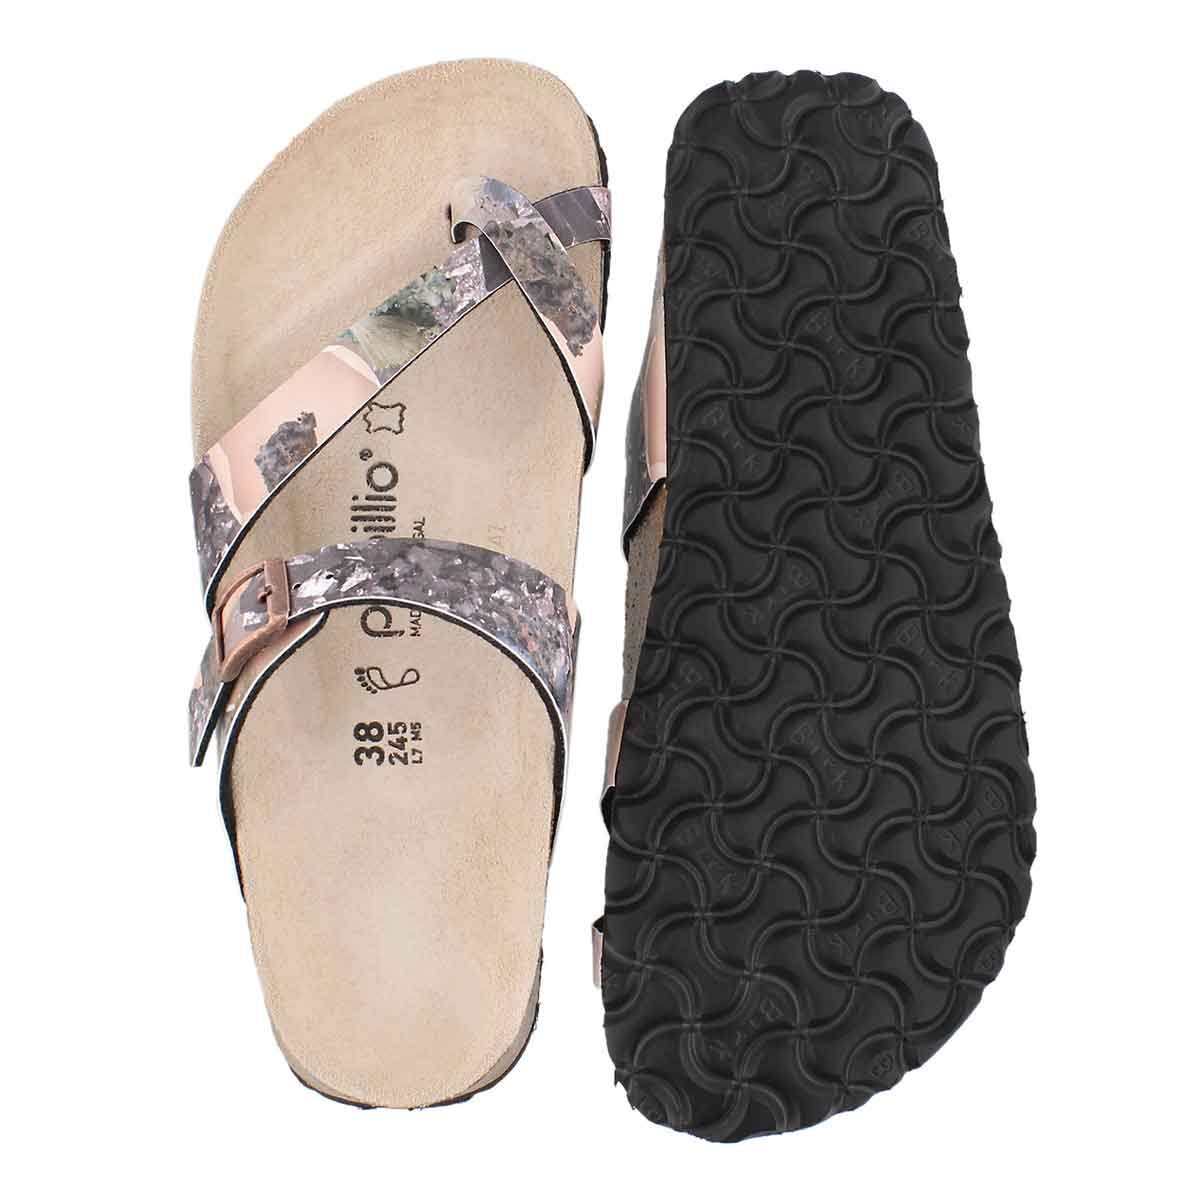 Lds Tabora BF cryst lilac toe thong sndl